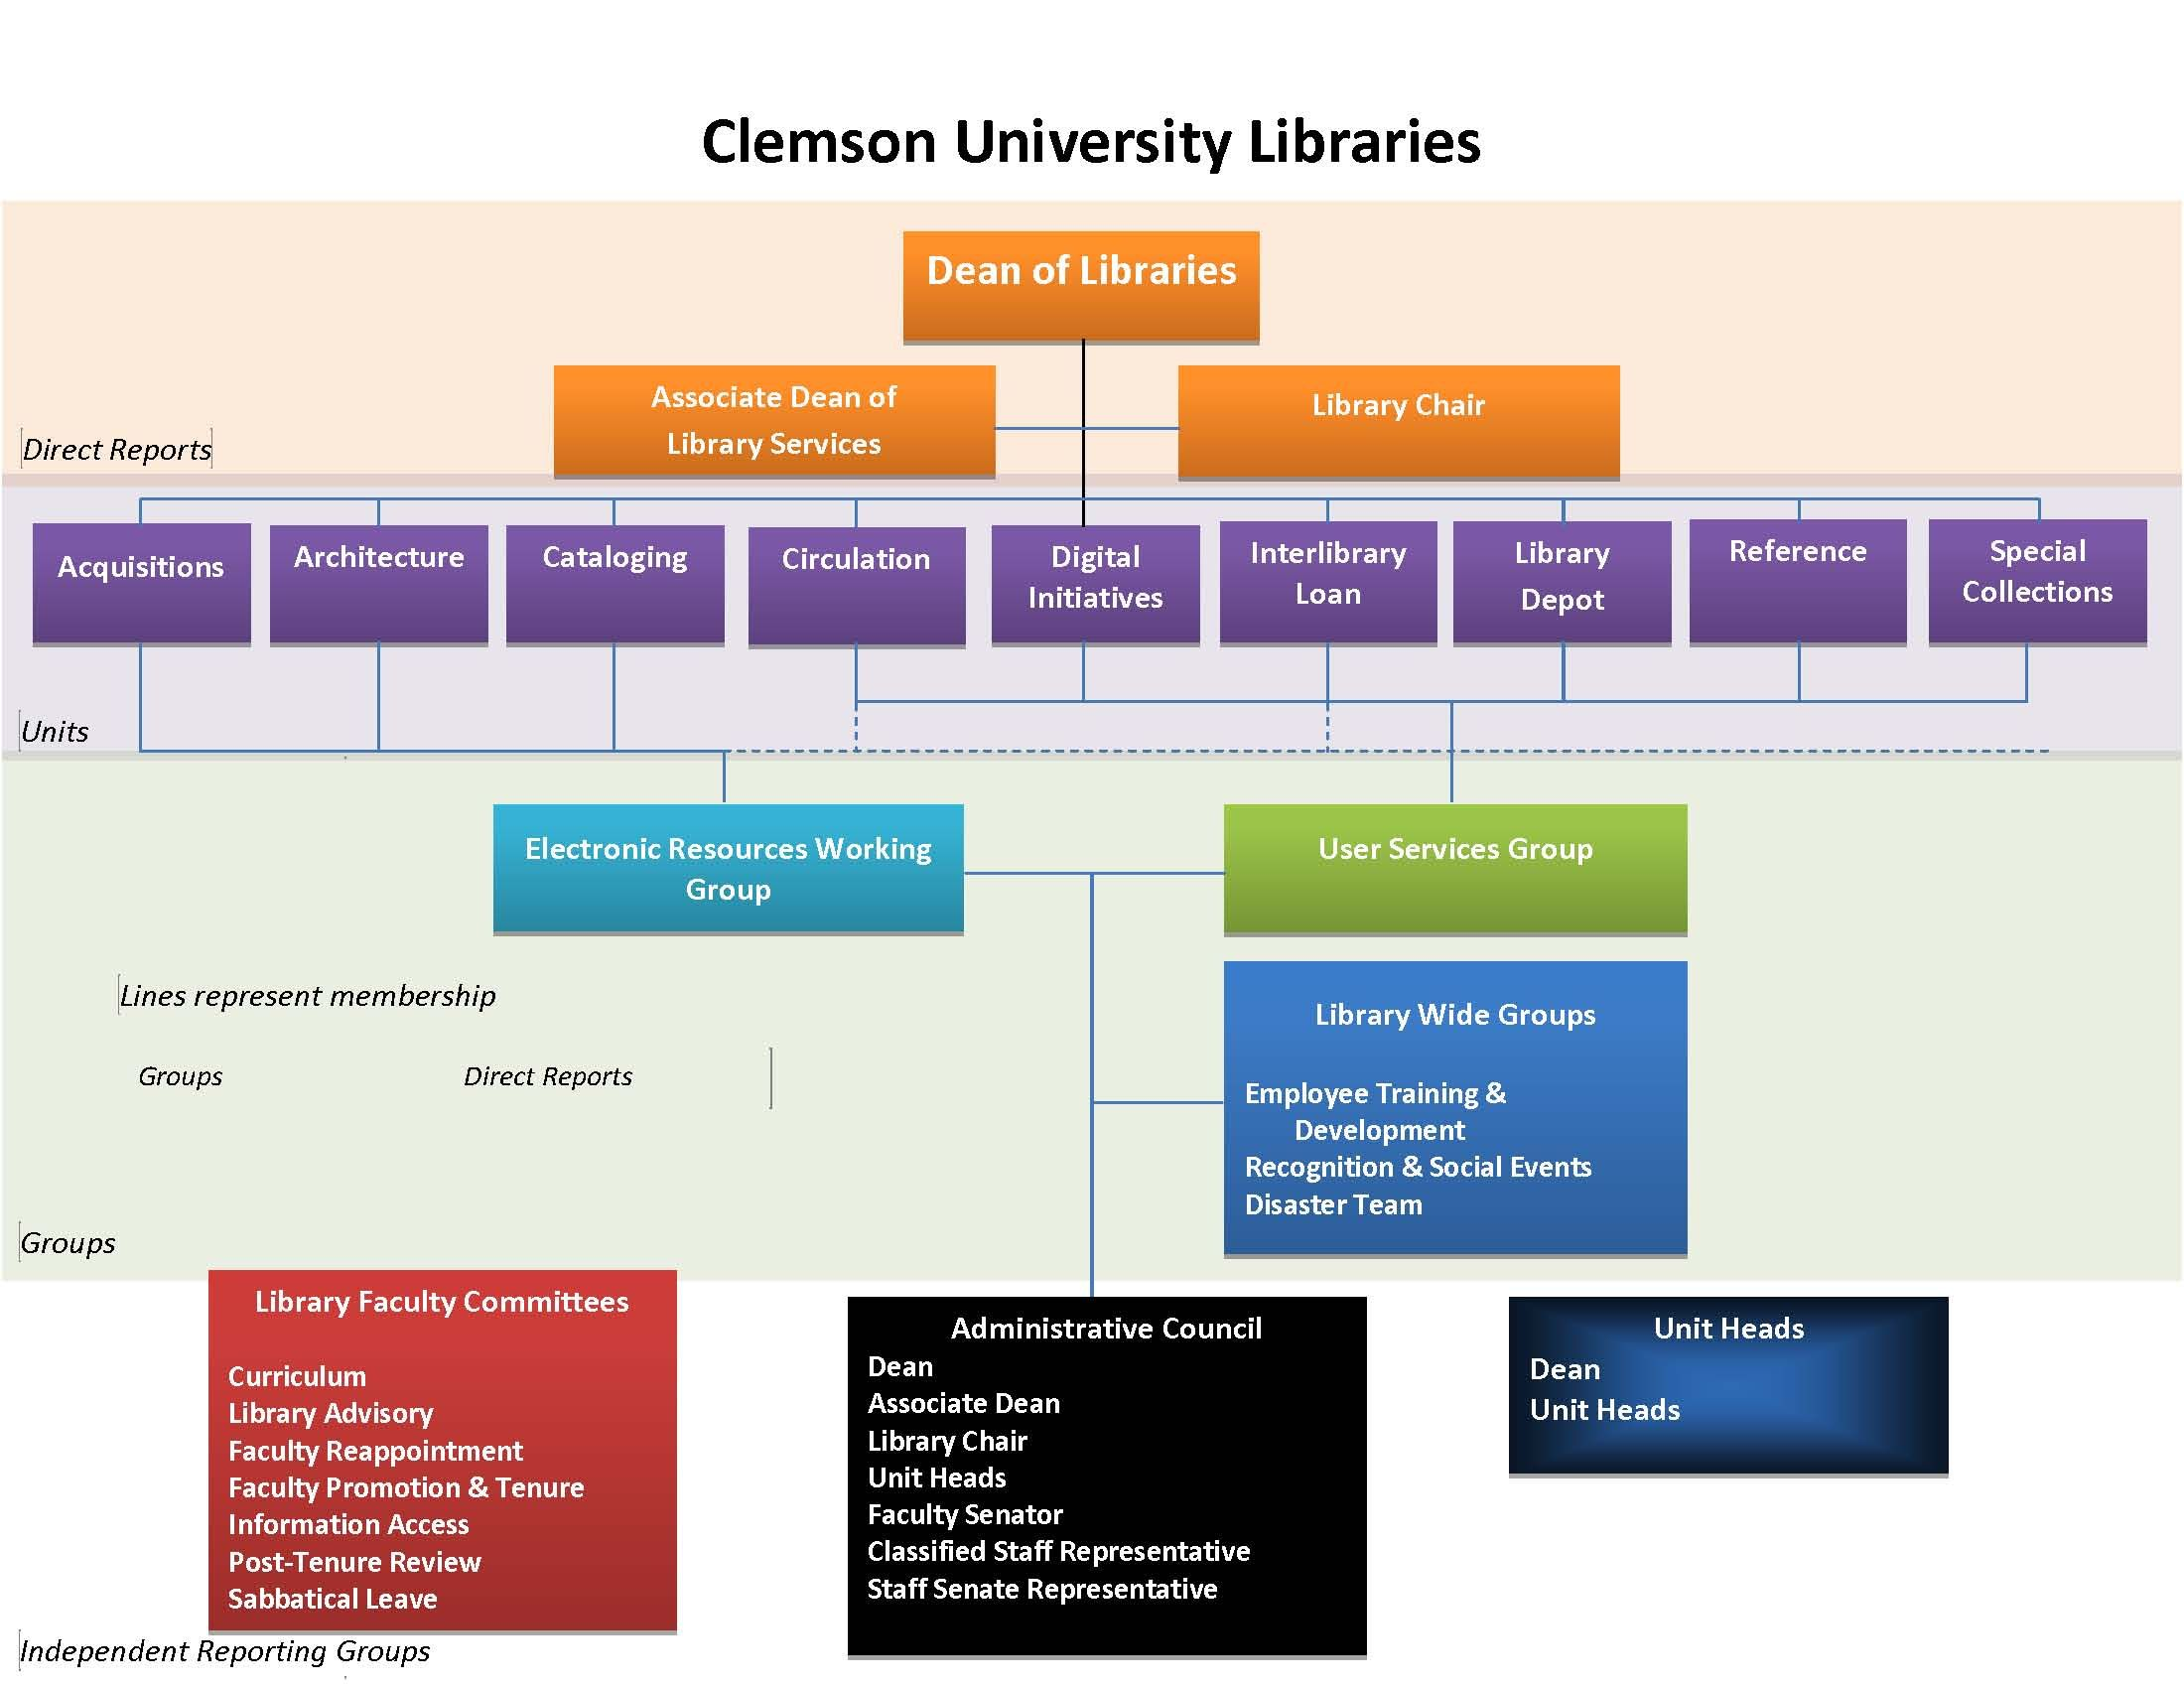 Flow chart ms word factory example organizational chart clemson university libraries organization chart library org a2ee39b4577f460fac886245c826ea1d 111253053266478360 flow chart ms word factory geenschuldenfo Image collections